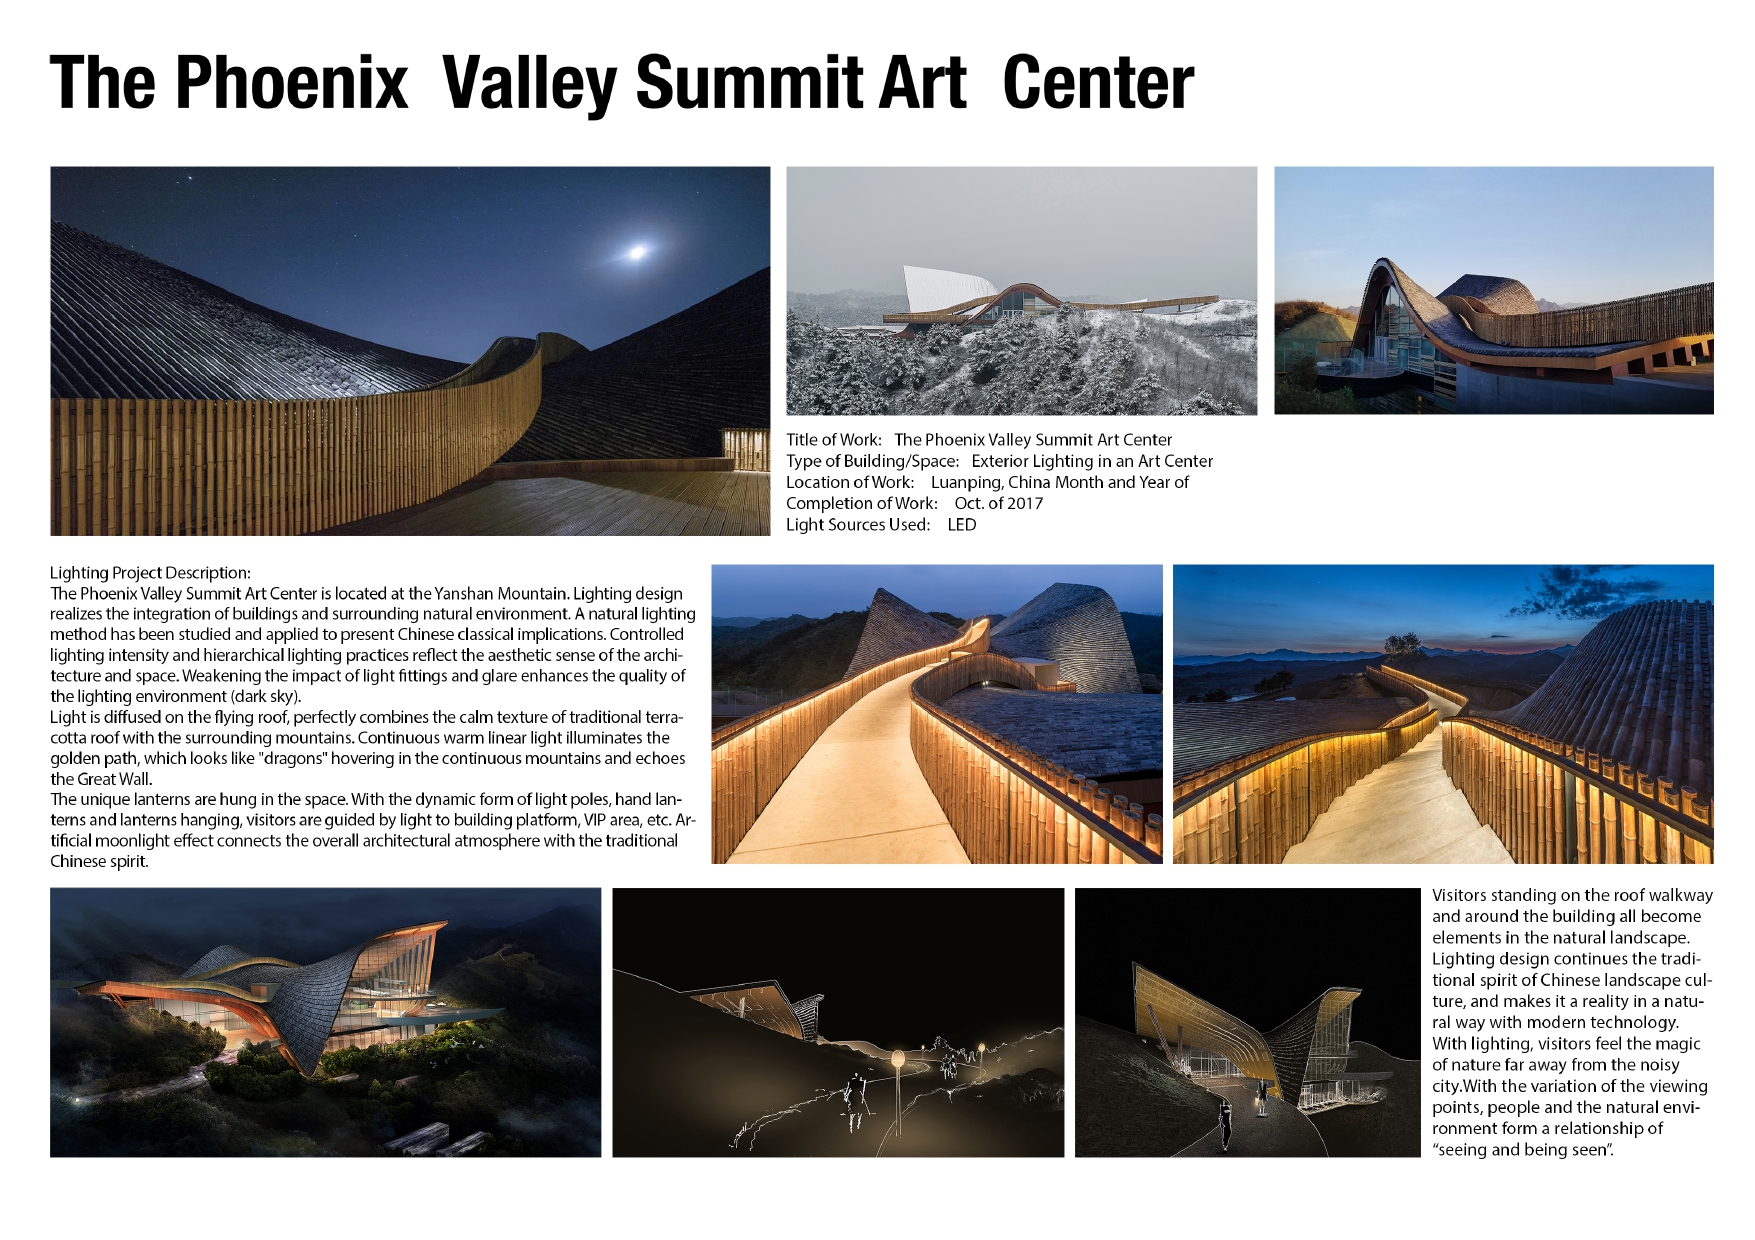 The Phoenix Valley Summit Art Center